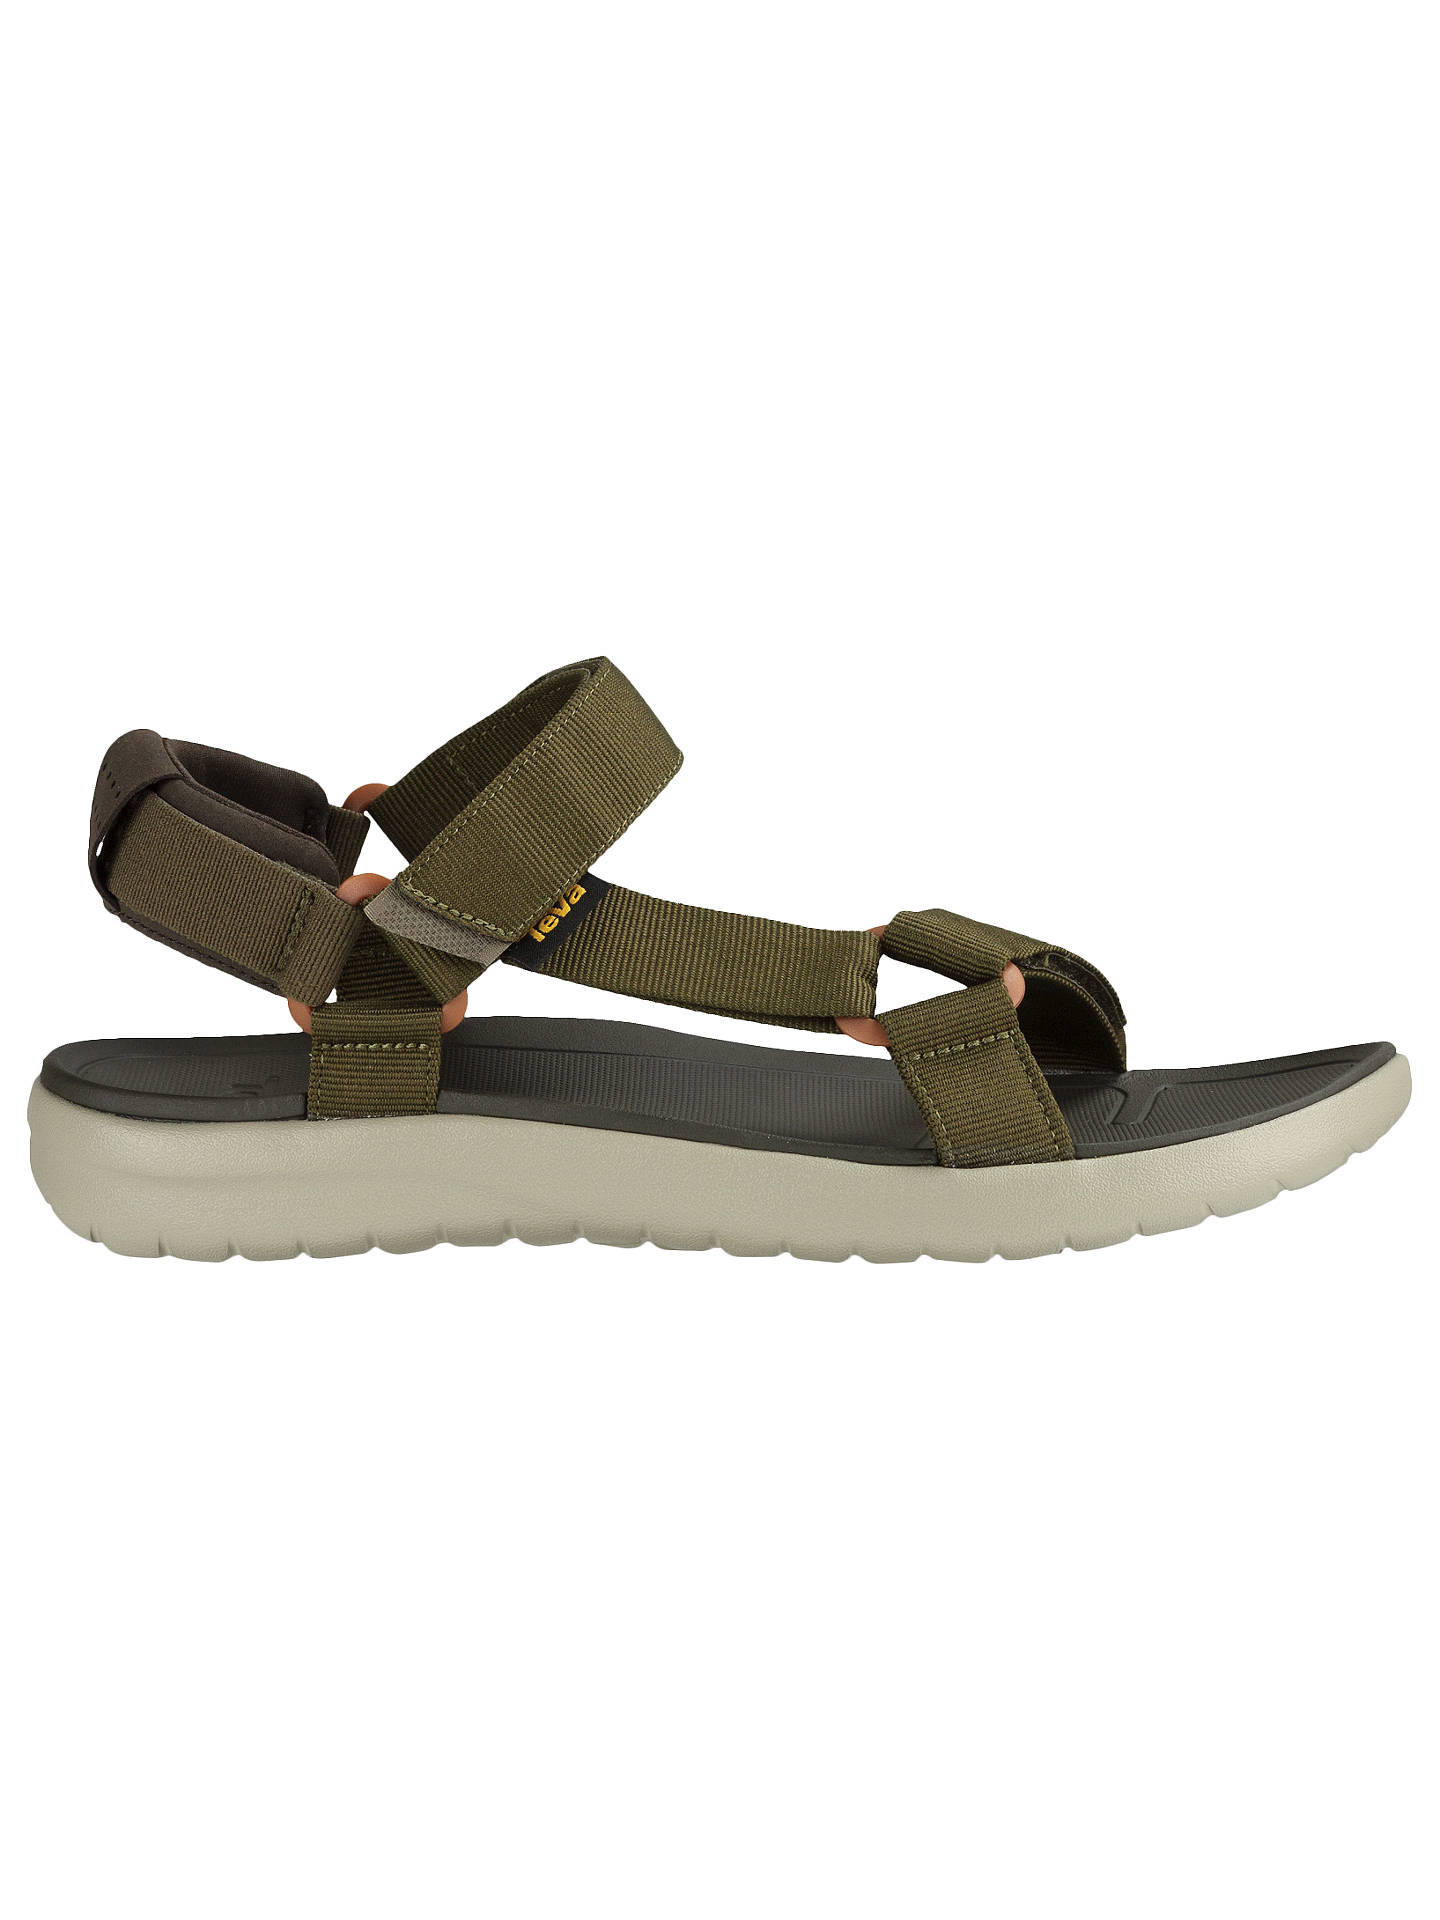 66902fb552e9 Buy Teva Sanborn Universal Men s Sandals